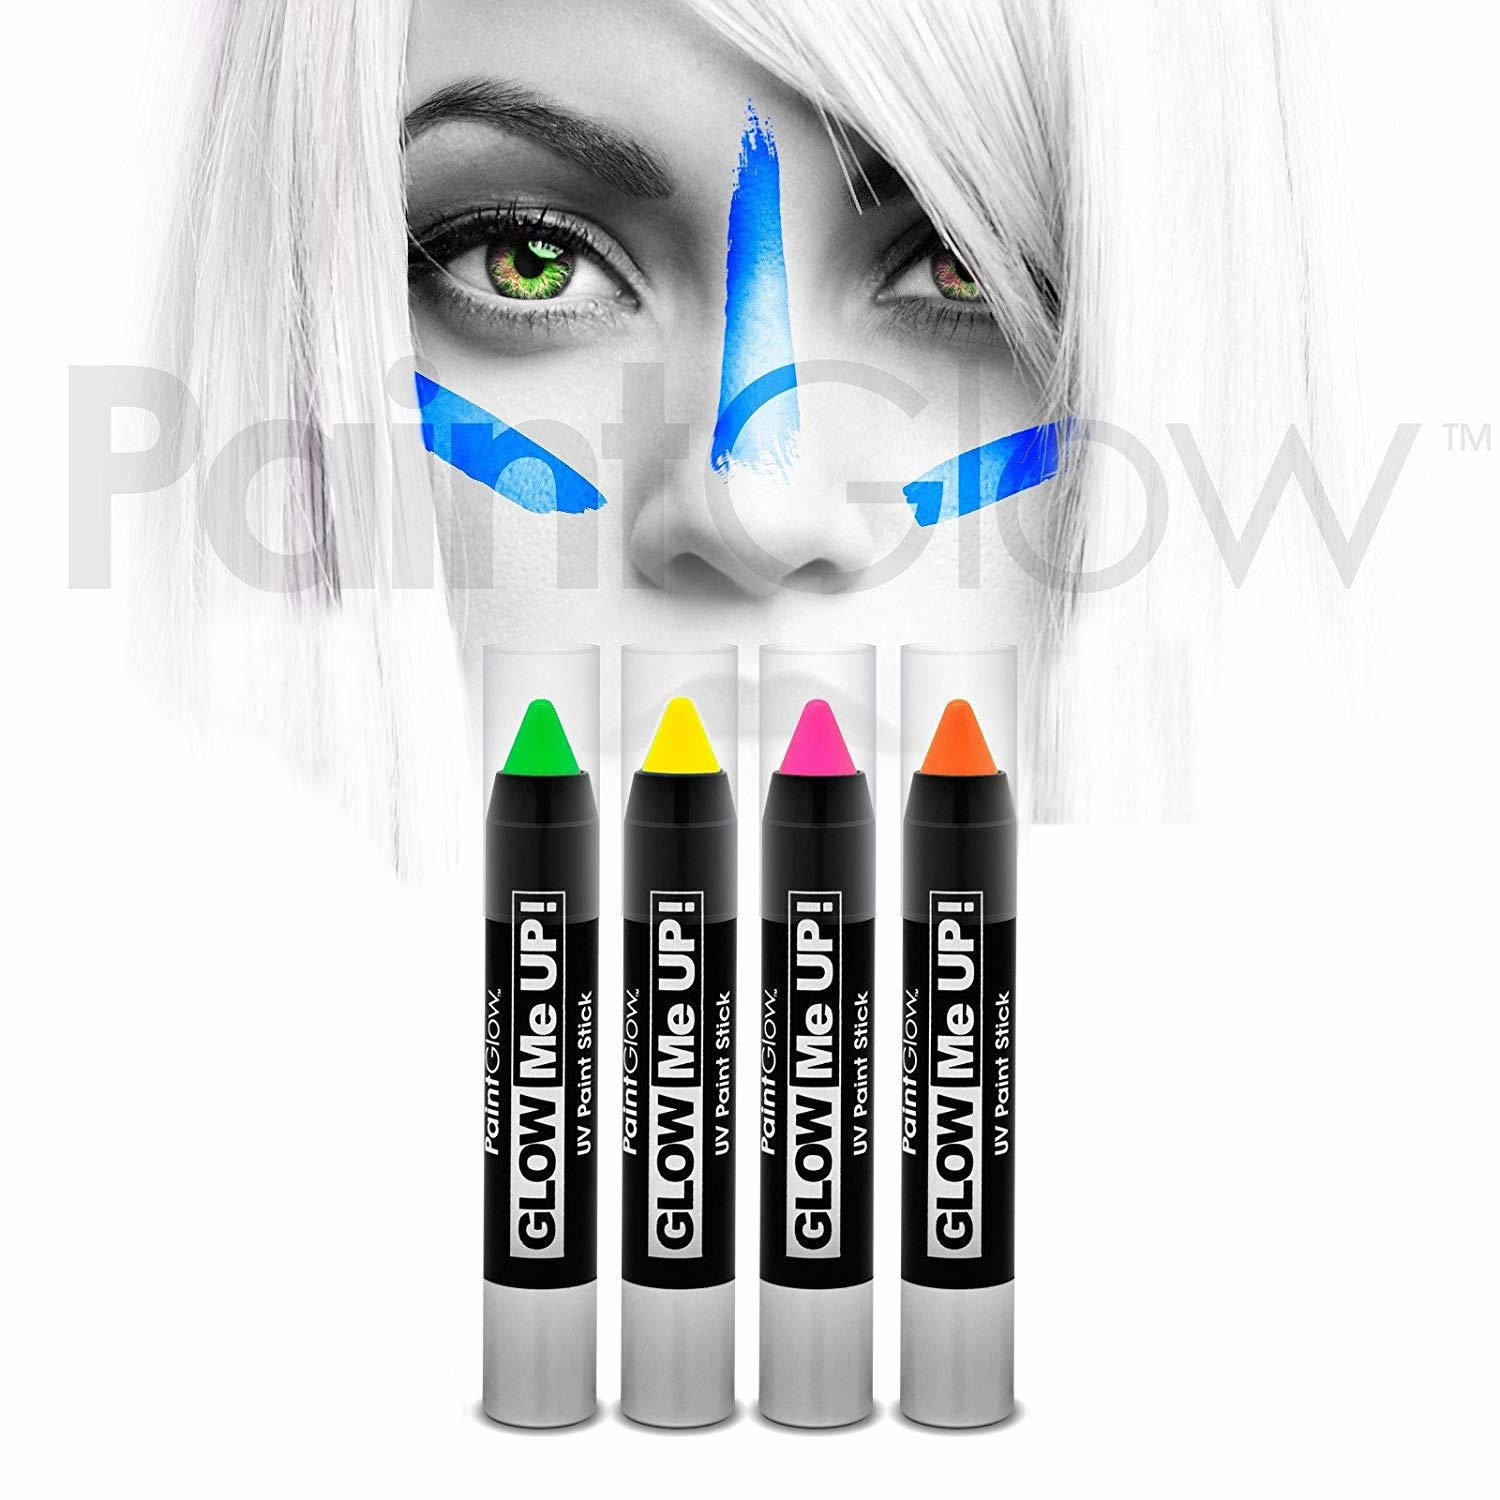 Premium Neon UV Face Paint Stick/Body Crayon makeup for the Face & Body - Vibrant set of 4 colours - Glows brightly under UV lighting Paint Glow